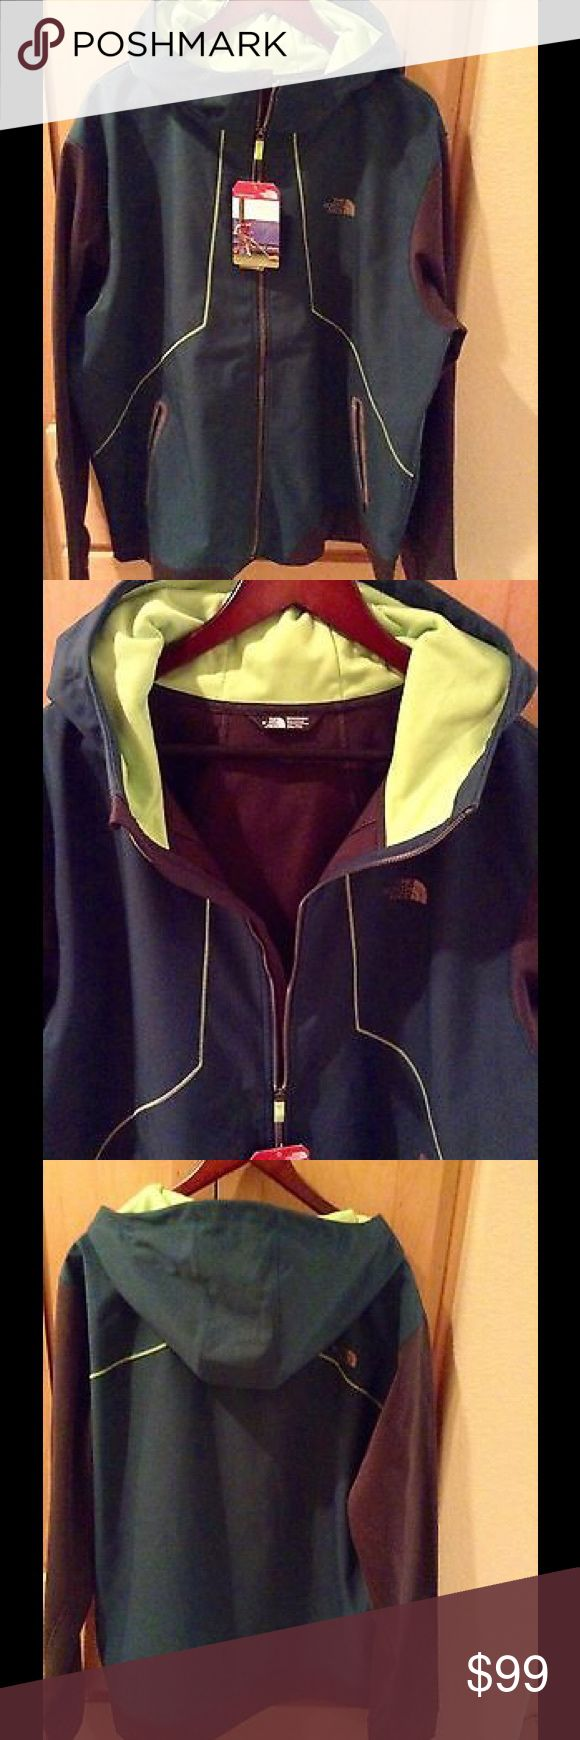 NEW The North Face Men's Jacket Brand new Men's Kilowatt Jacket in XXL in depth gin/asphlgy color. No trade.  Price is firm. North Face Jackets & Coats